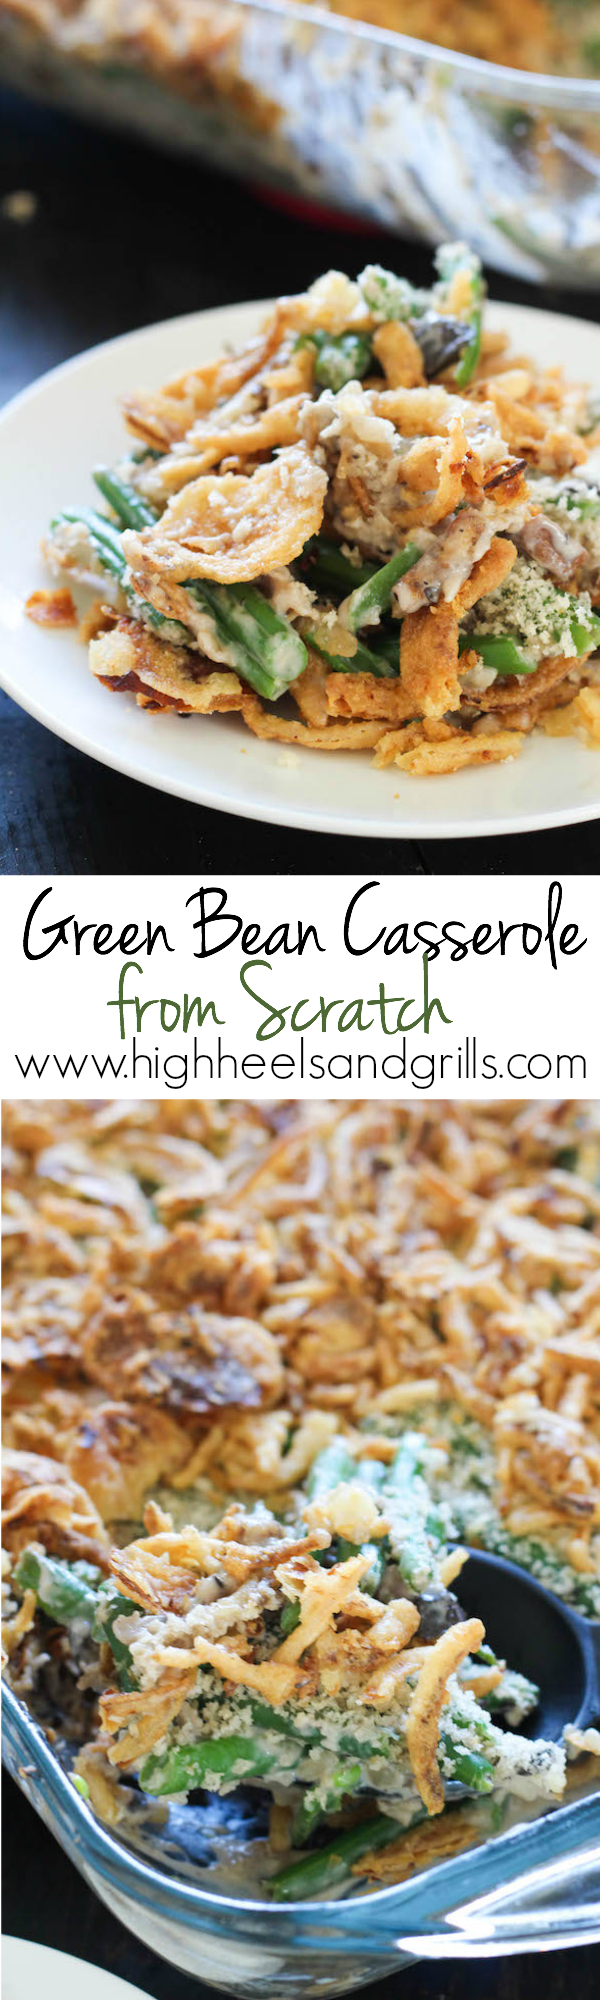 Green Bean Casserole Collage